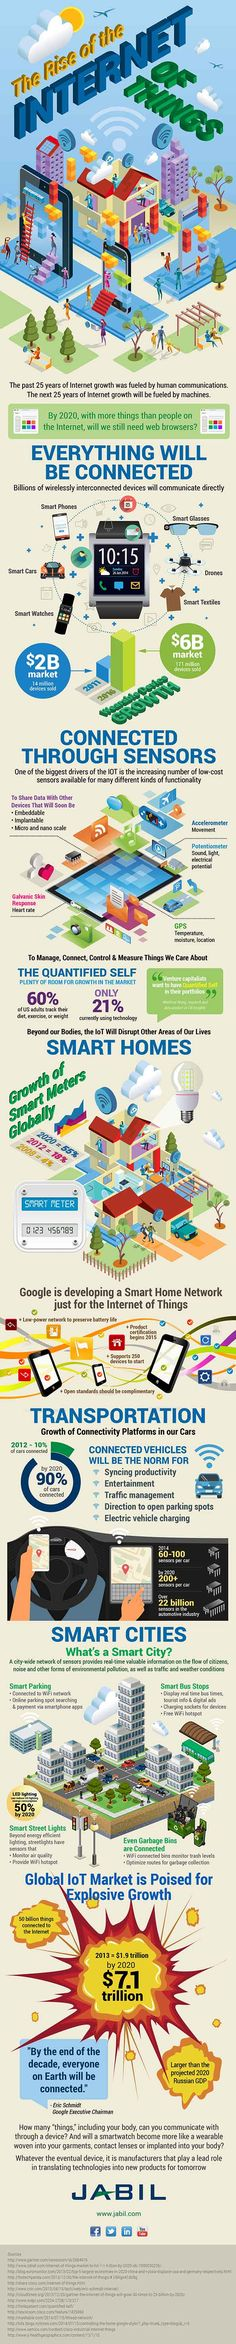 The Rise of the Internet of Things [INFOGRAPHIC]